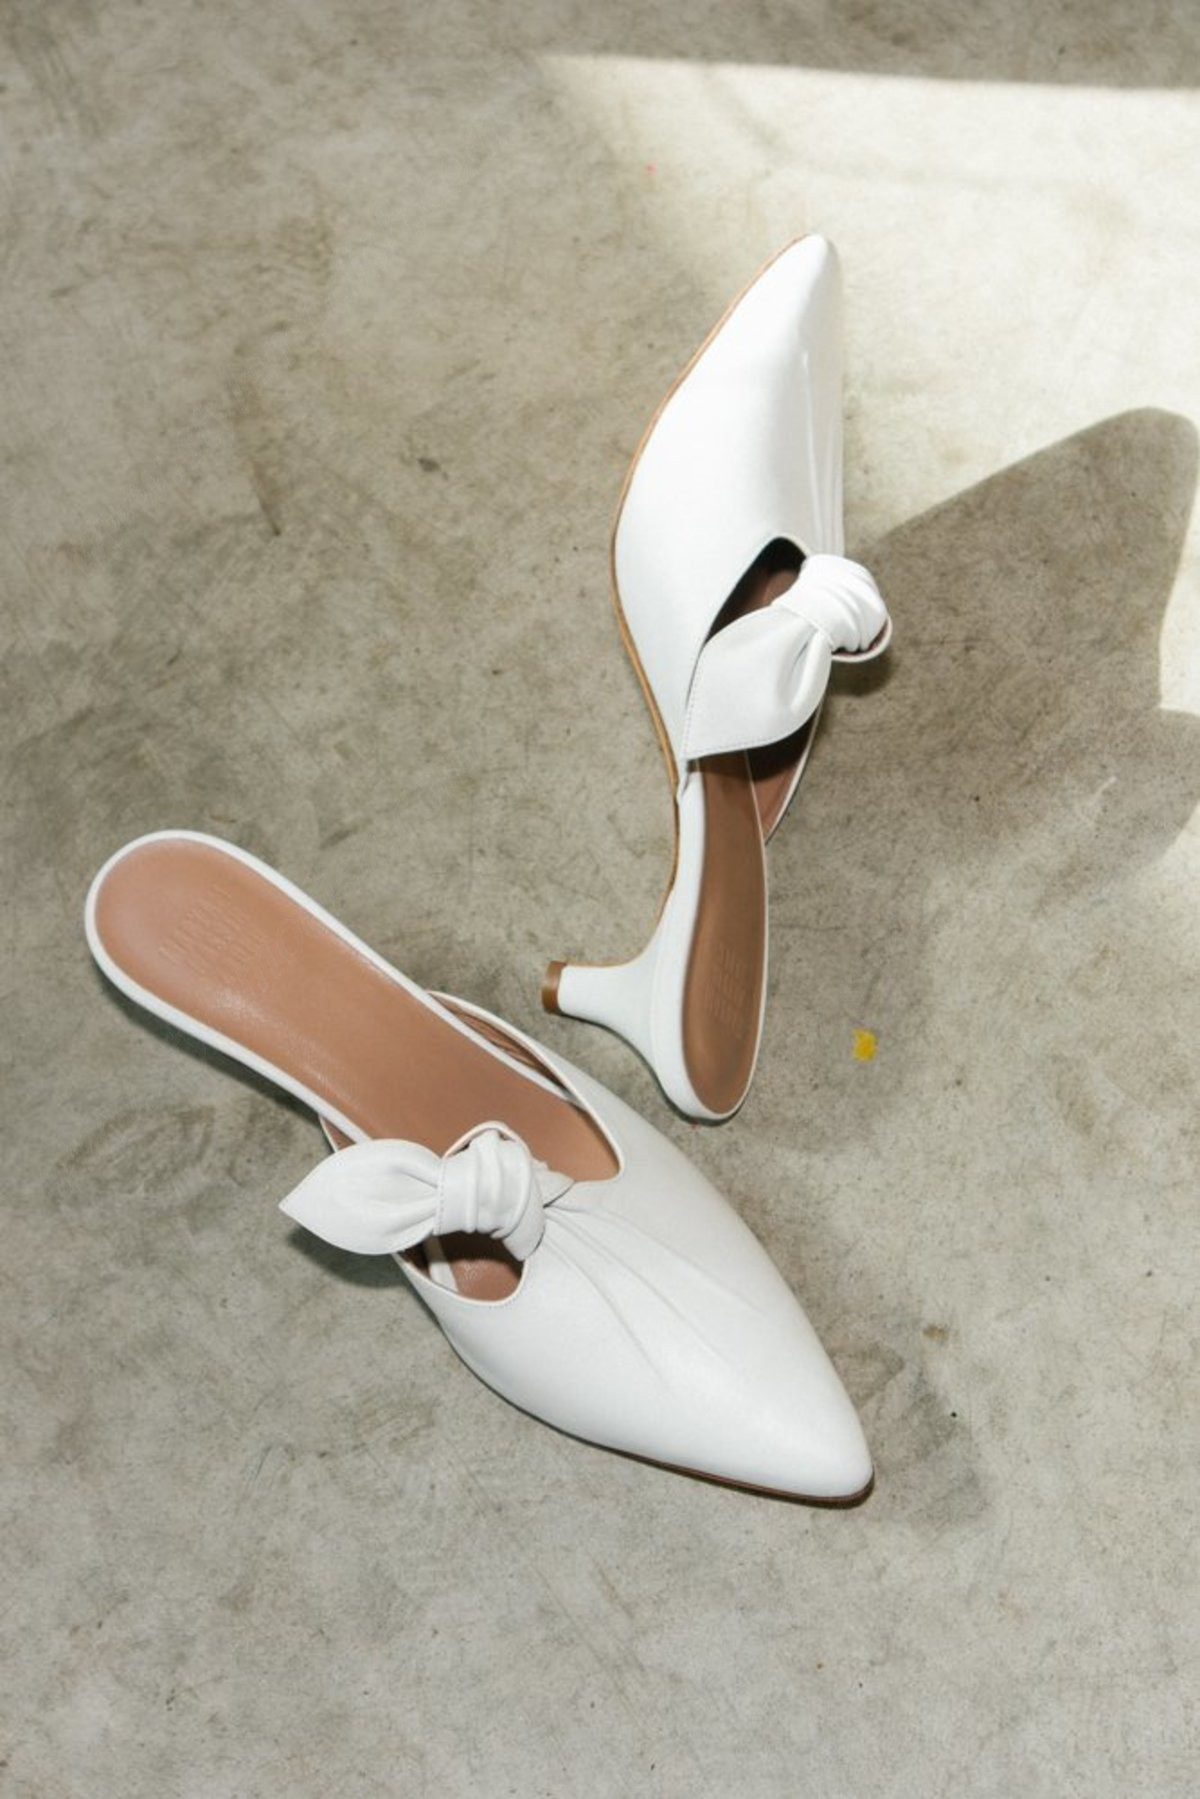 Woman's Maryam Nassir Zadeh Palo Mule - White Shoes - -0